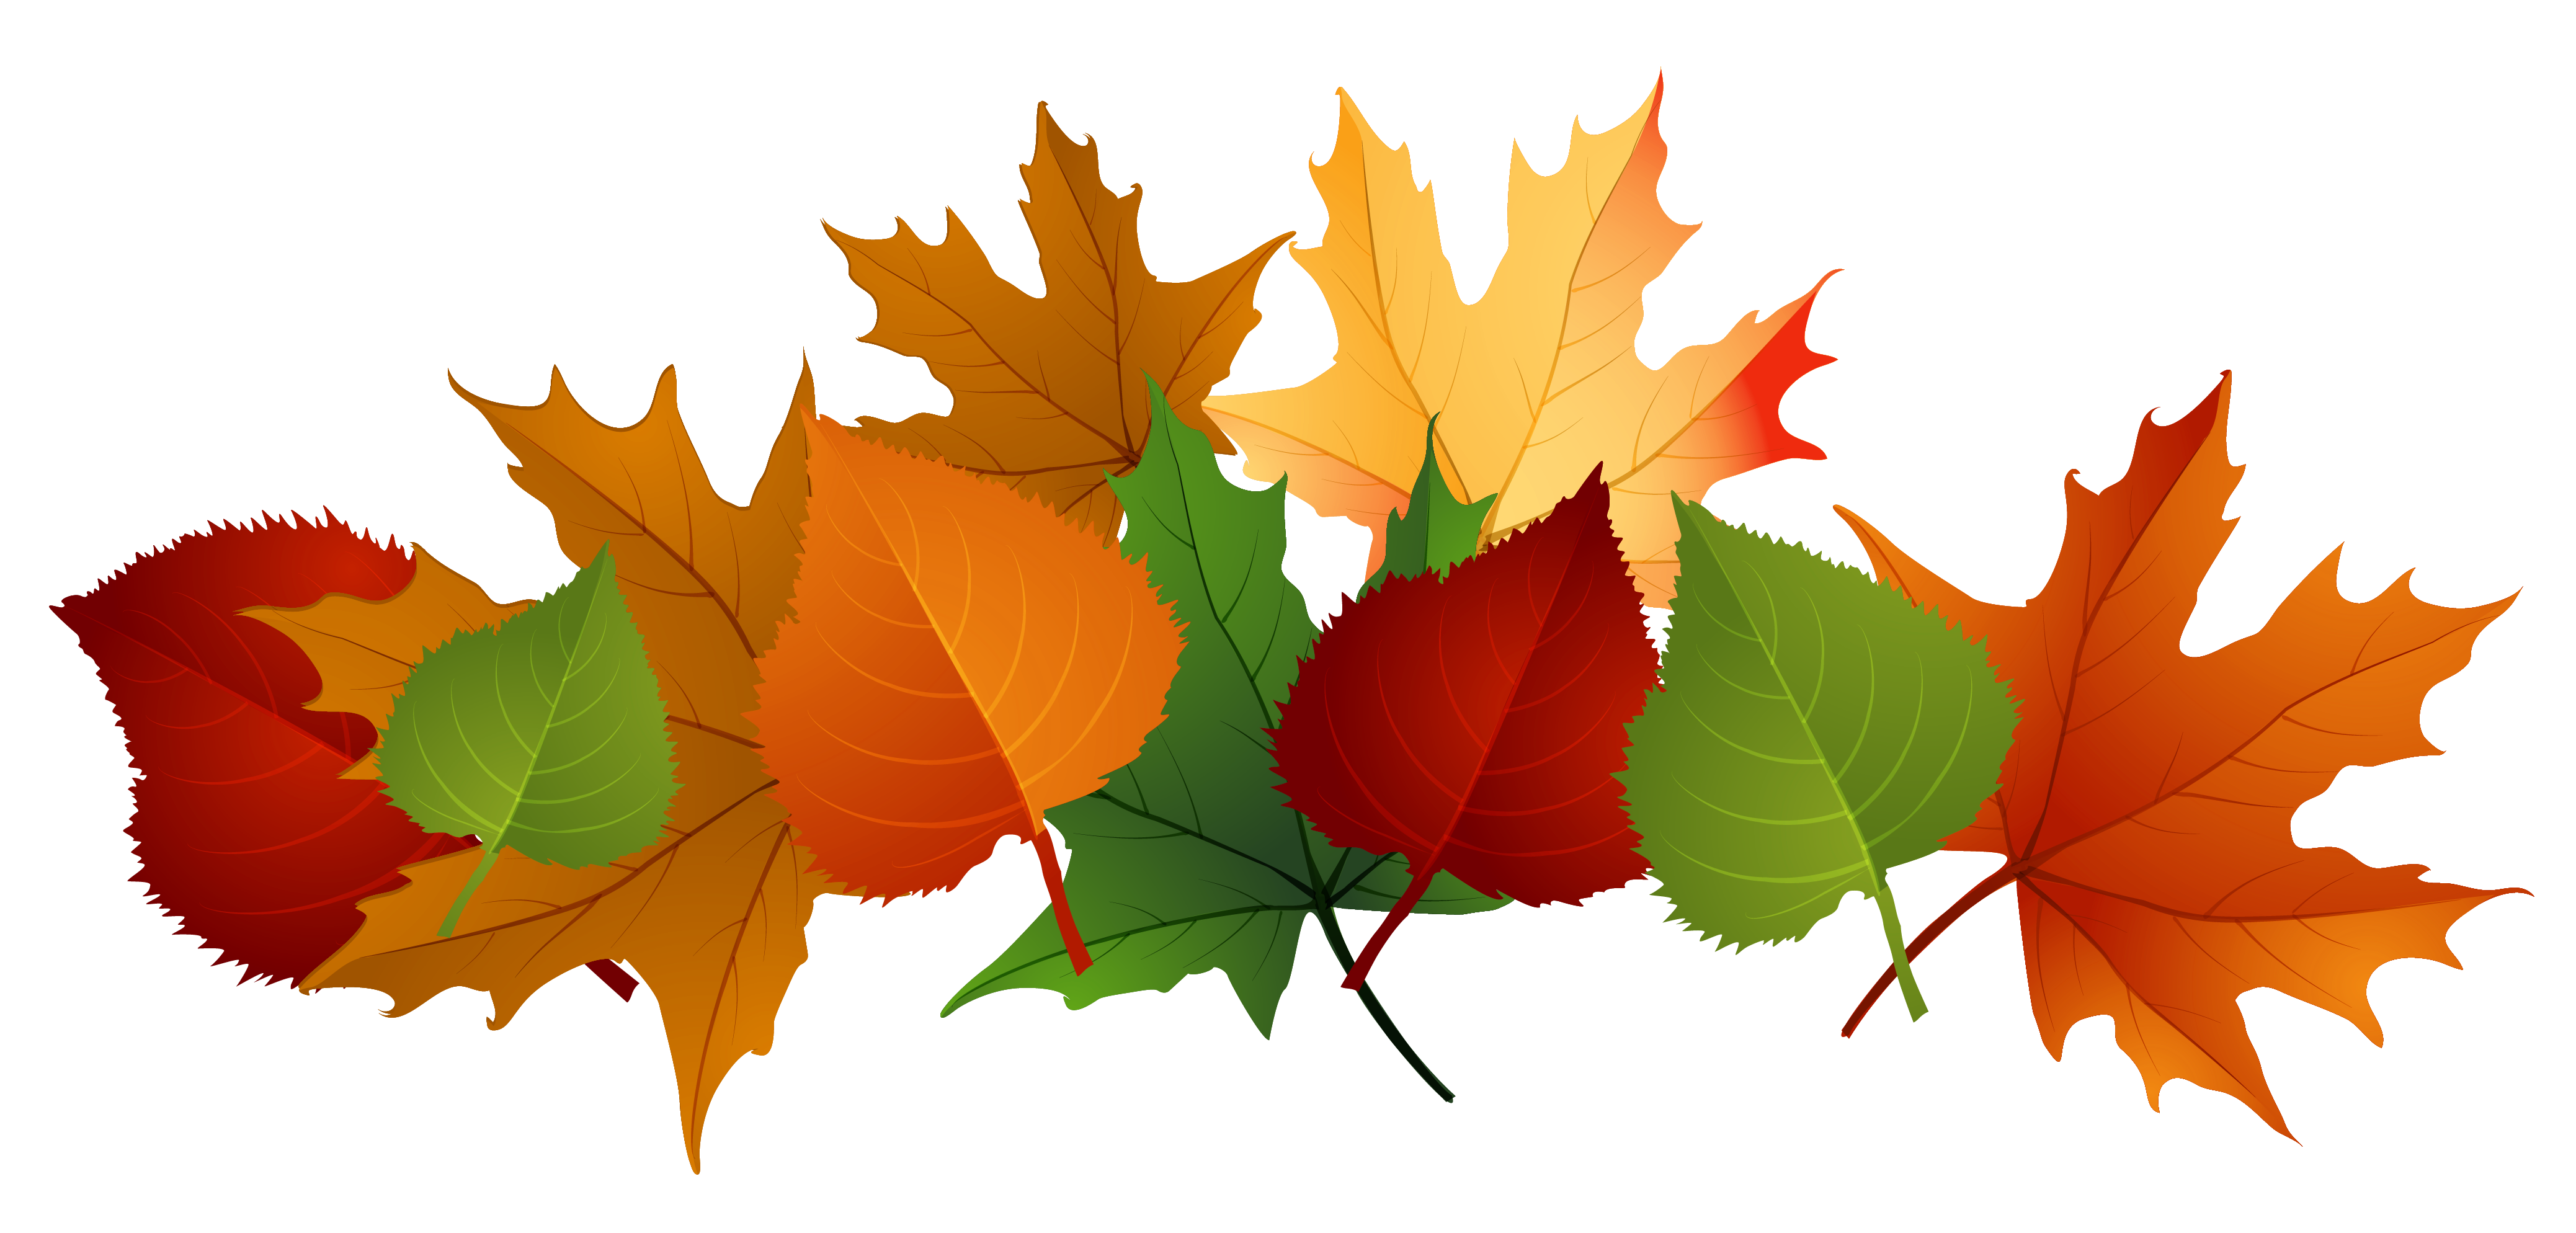 4153x1988 Autumn Leaves Pile Clip Art Fall Leaves Png Picture